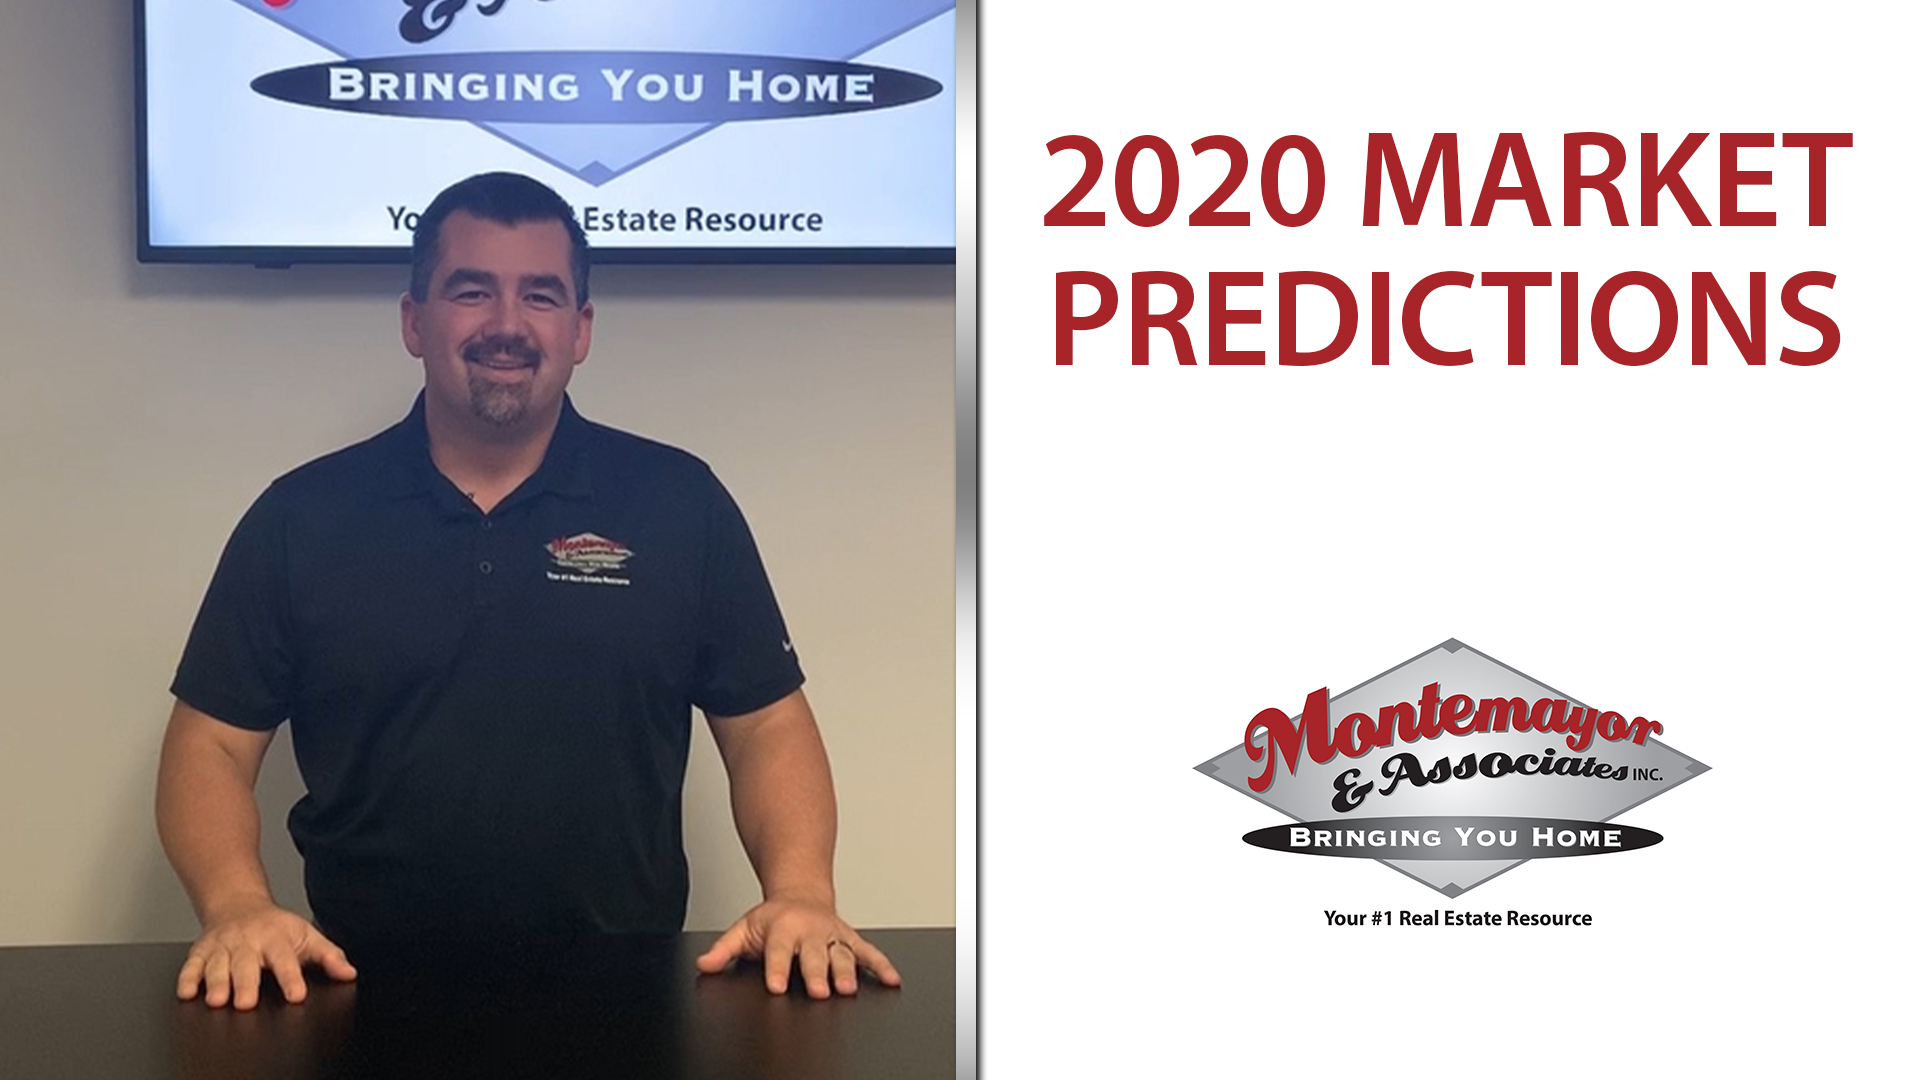 What the Future Holds for Our 2020 Market